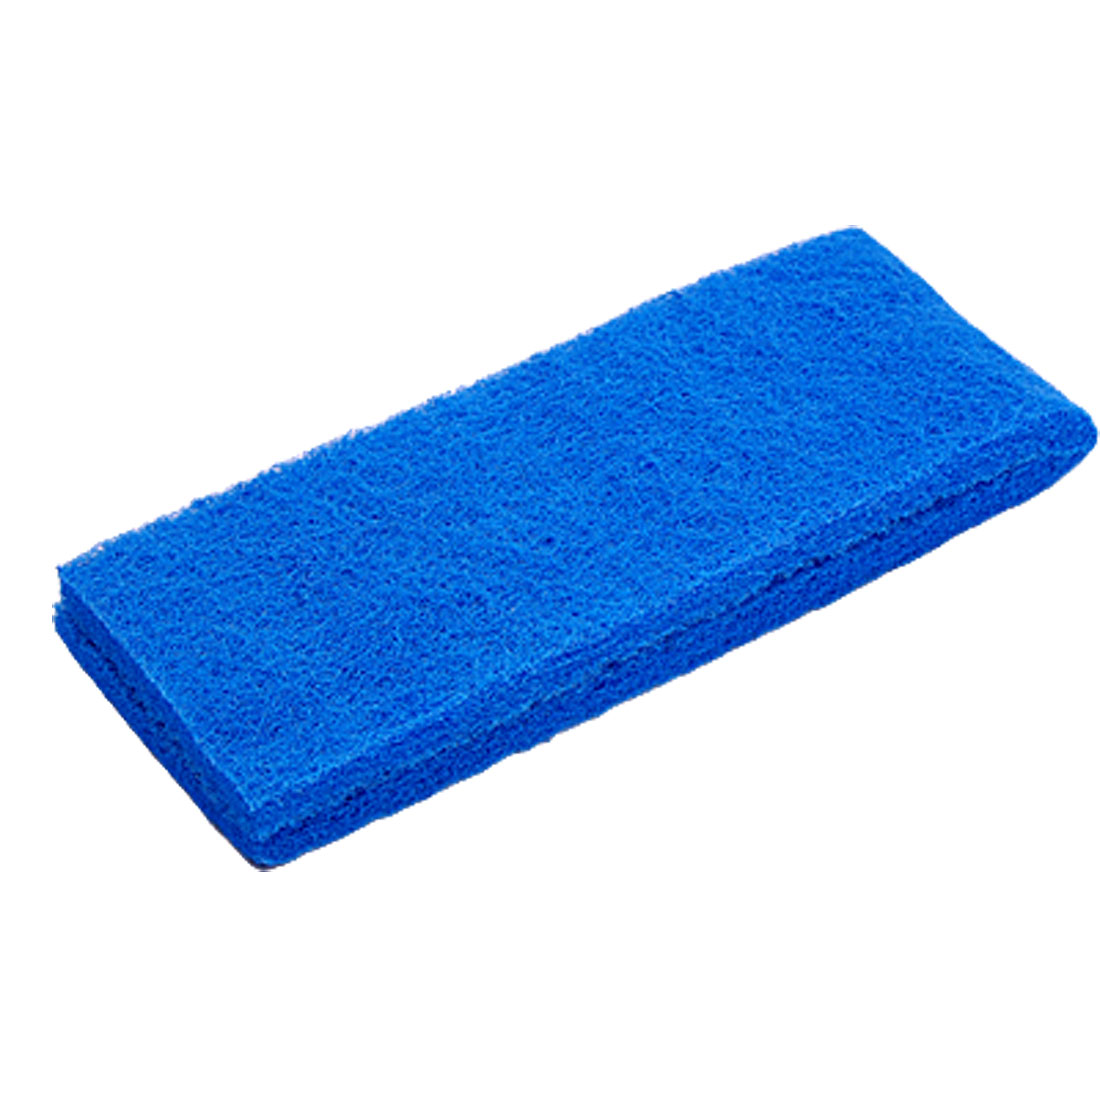 2 Layer Aquarium Fish Tank Biochemical Economic Filter Sponge Blue